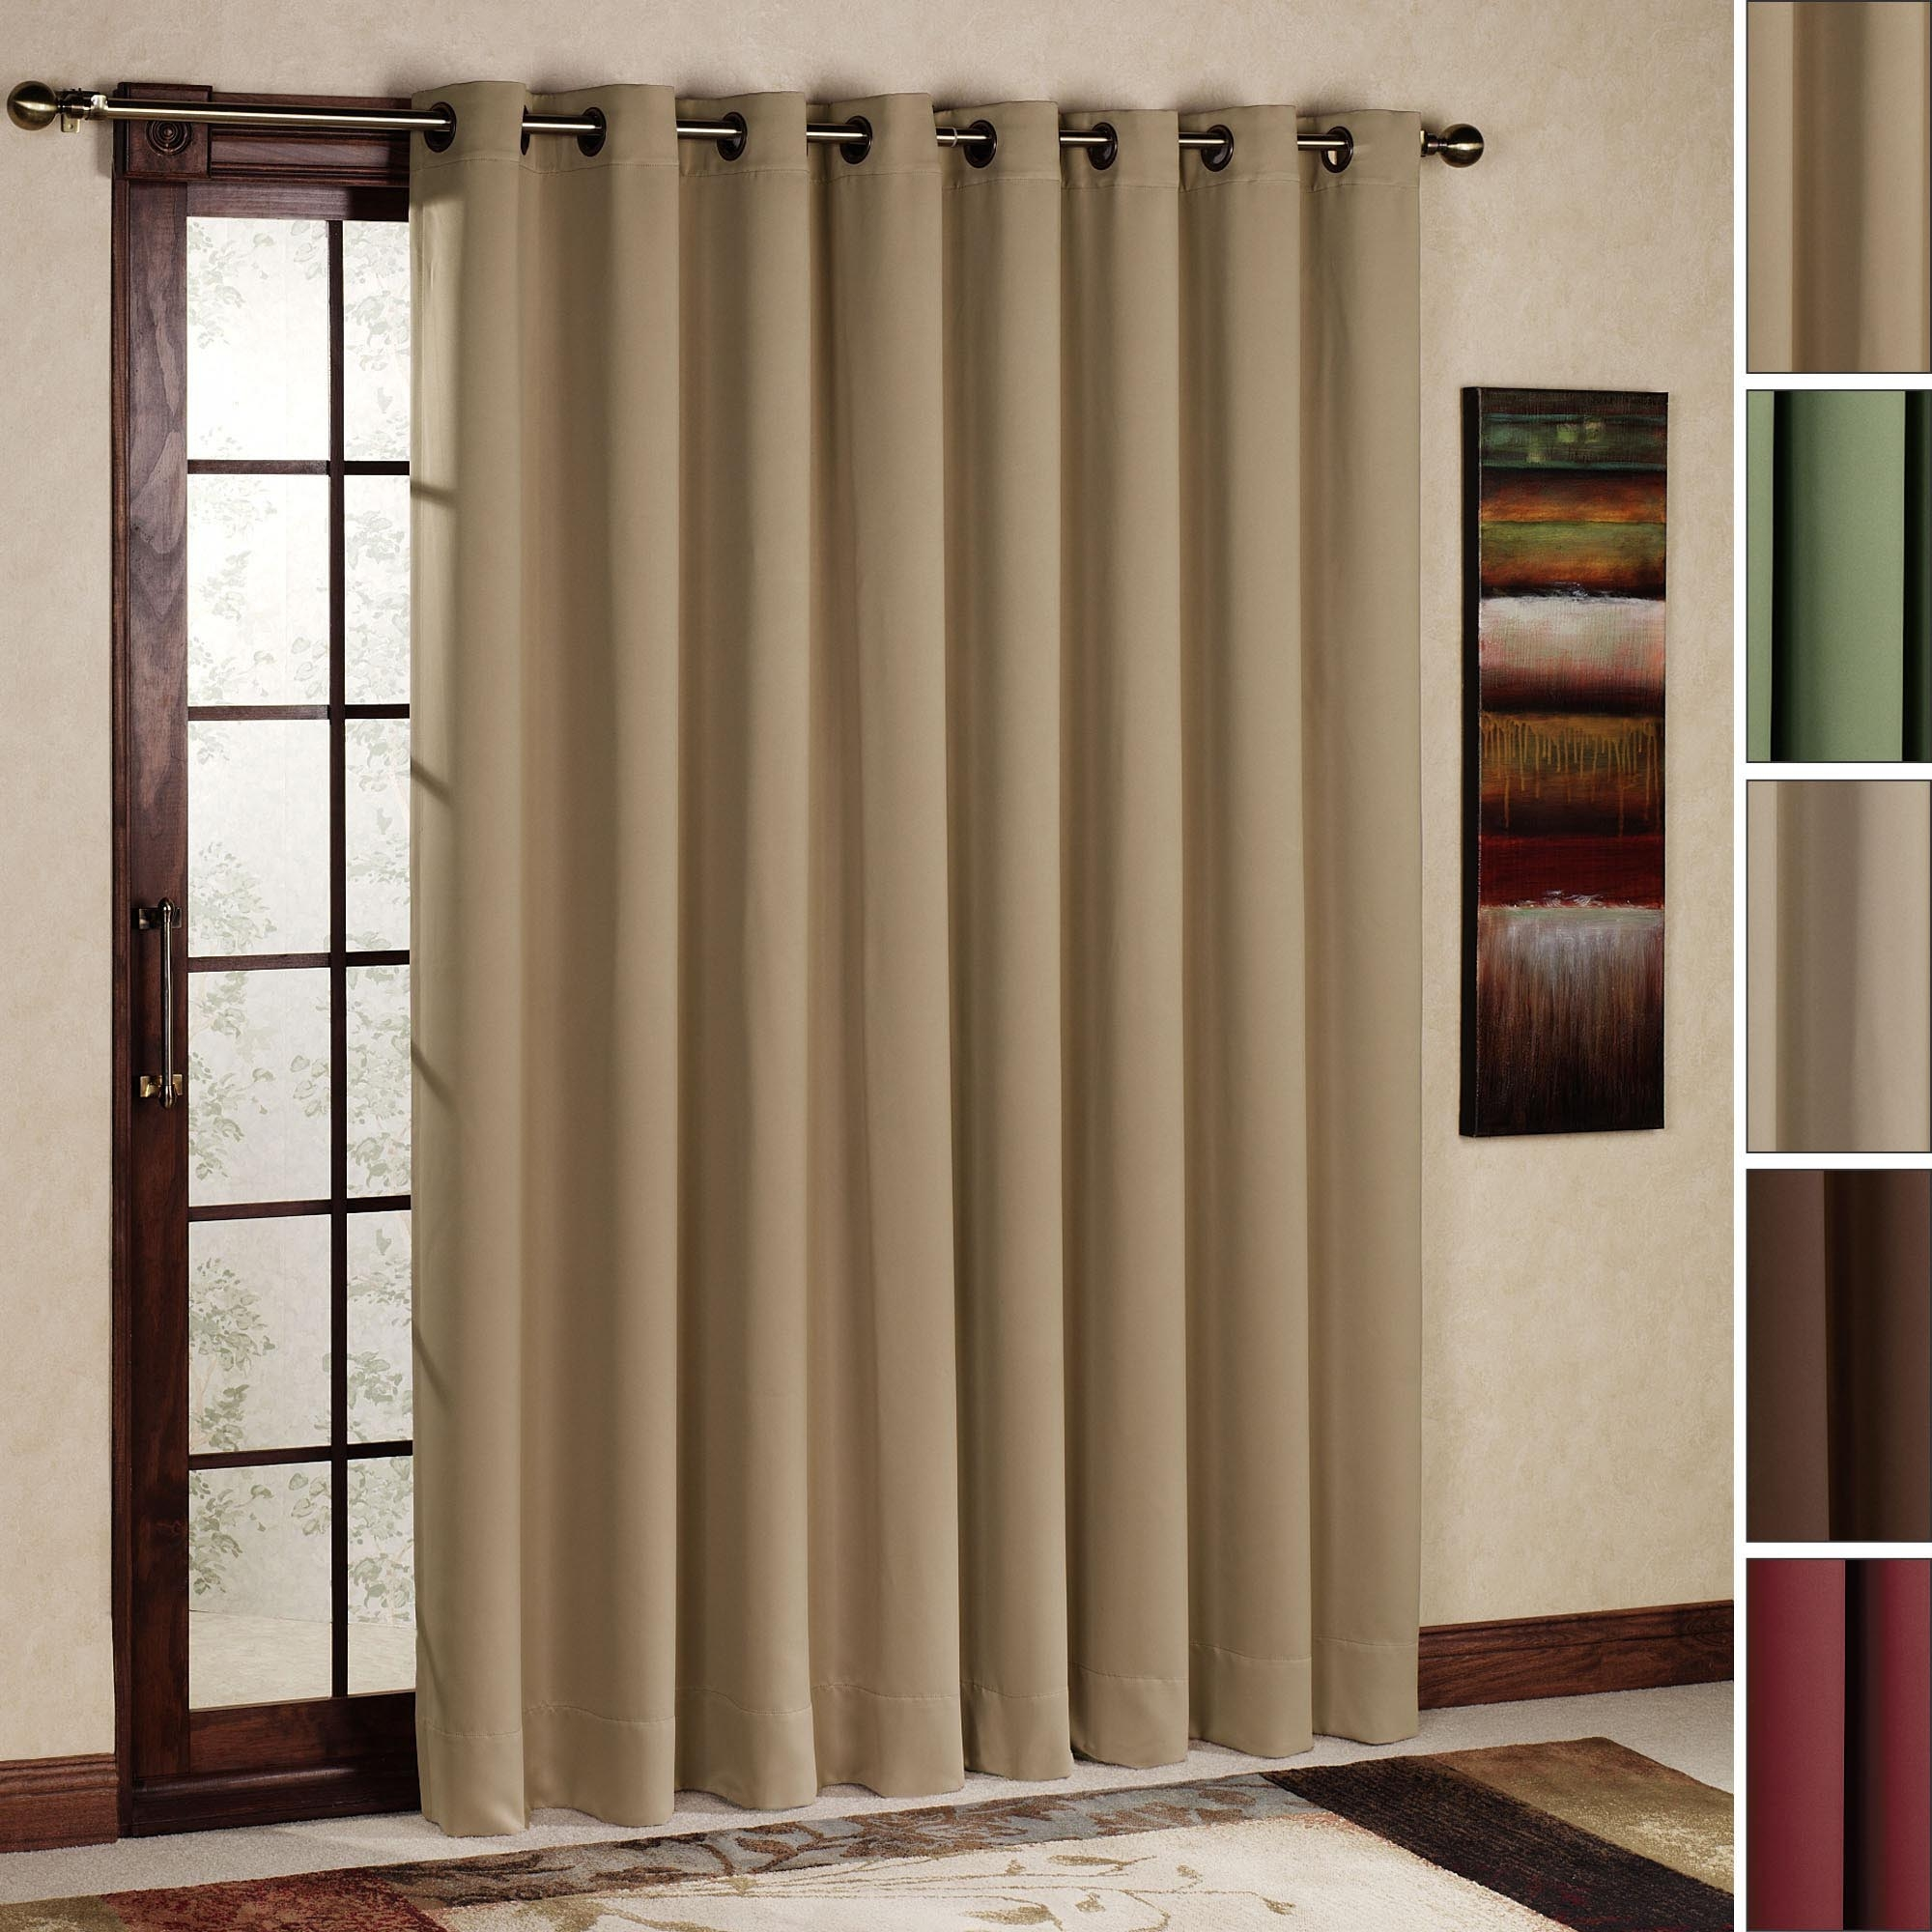 Curtain Rod Size For Sliding Glass Door Curtain Rods Pinterest Intended For Fabric Doorway Curtains (Image 4 of 15)